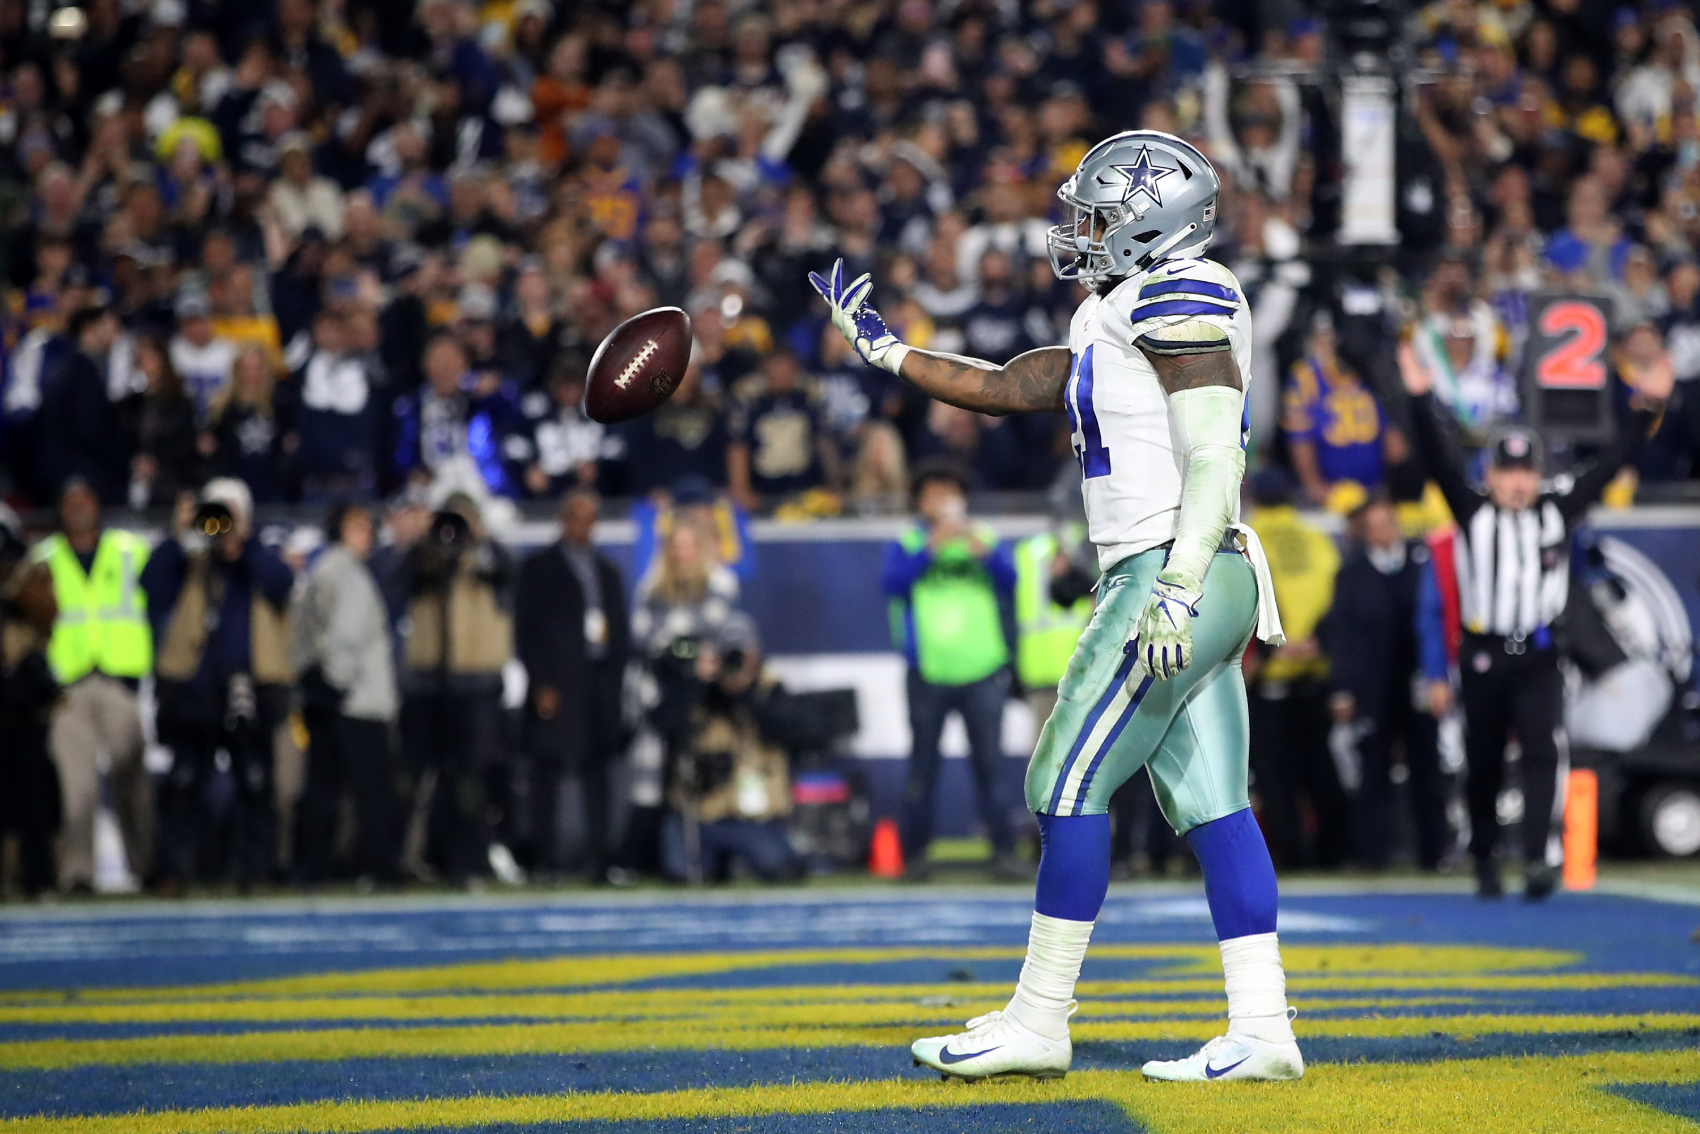 Ezekiel Elliott has had a great start to his career with the Dallas Cowboys. He is even in an exclusive club with LaDainian Tomlinson.